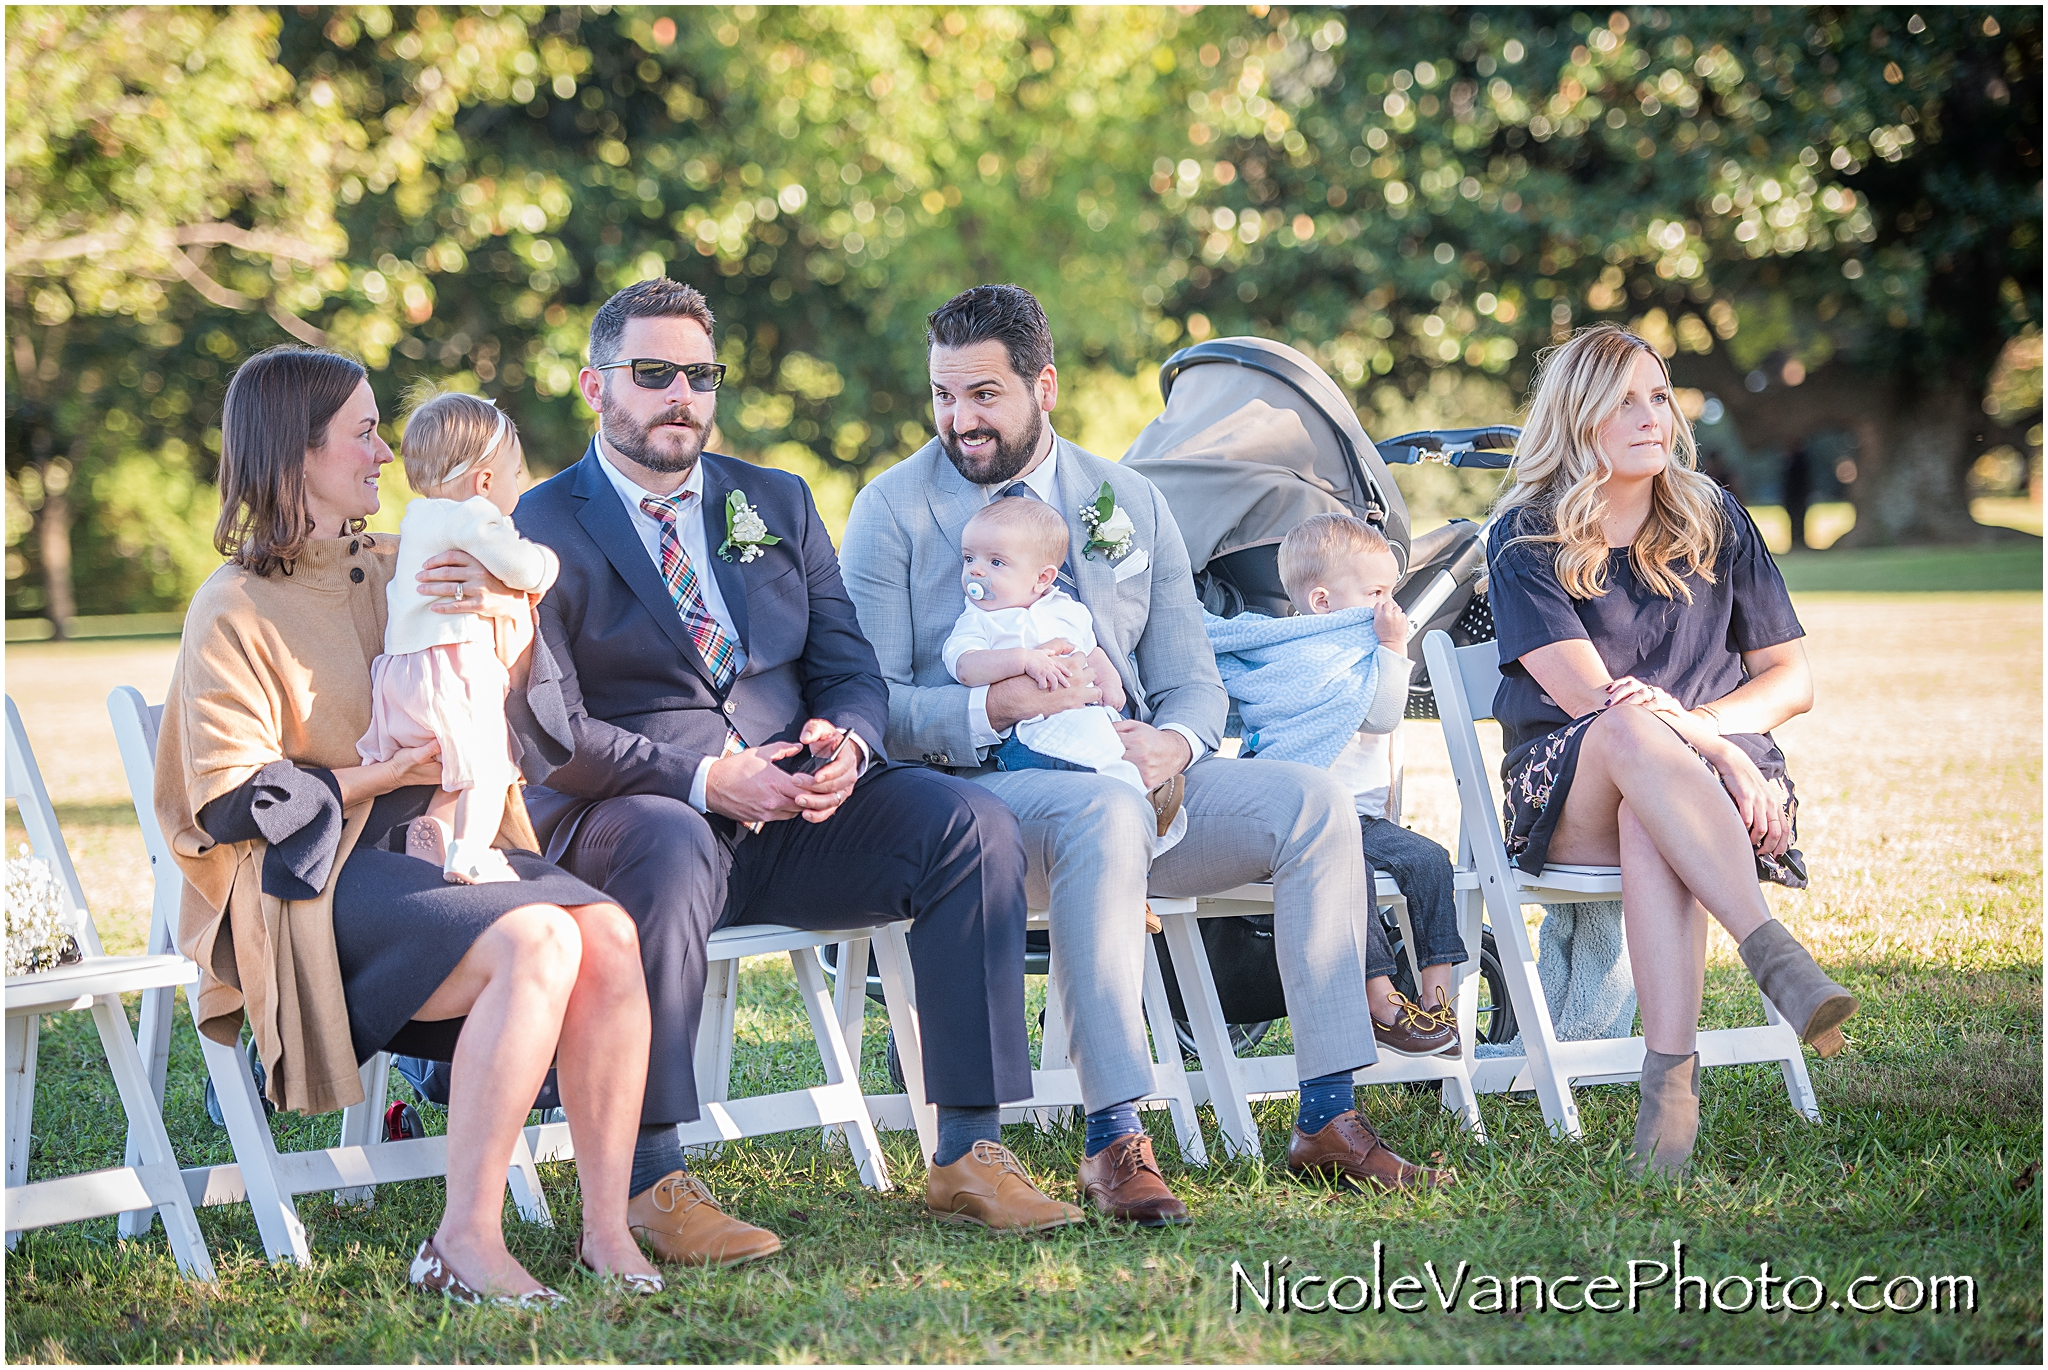 Guests enjoy the wedding ceremony with their young children at Maymont Park.